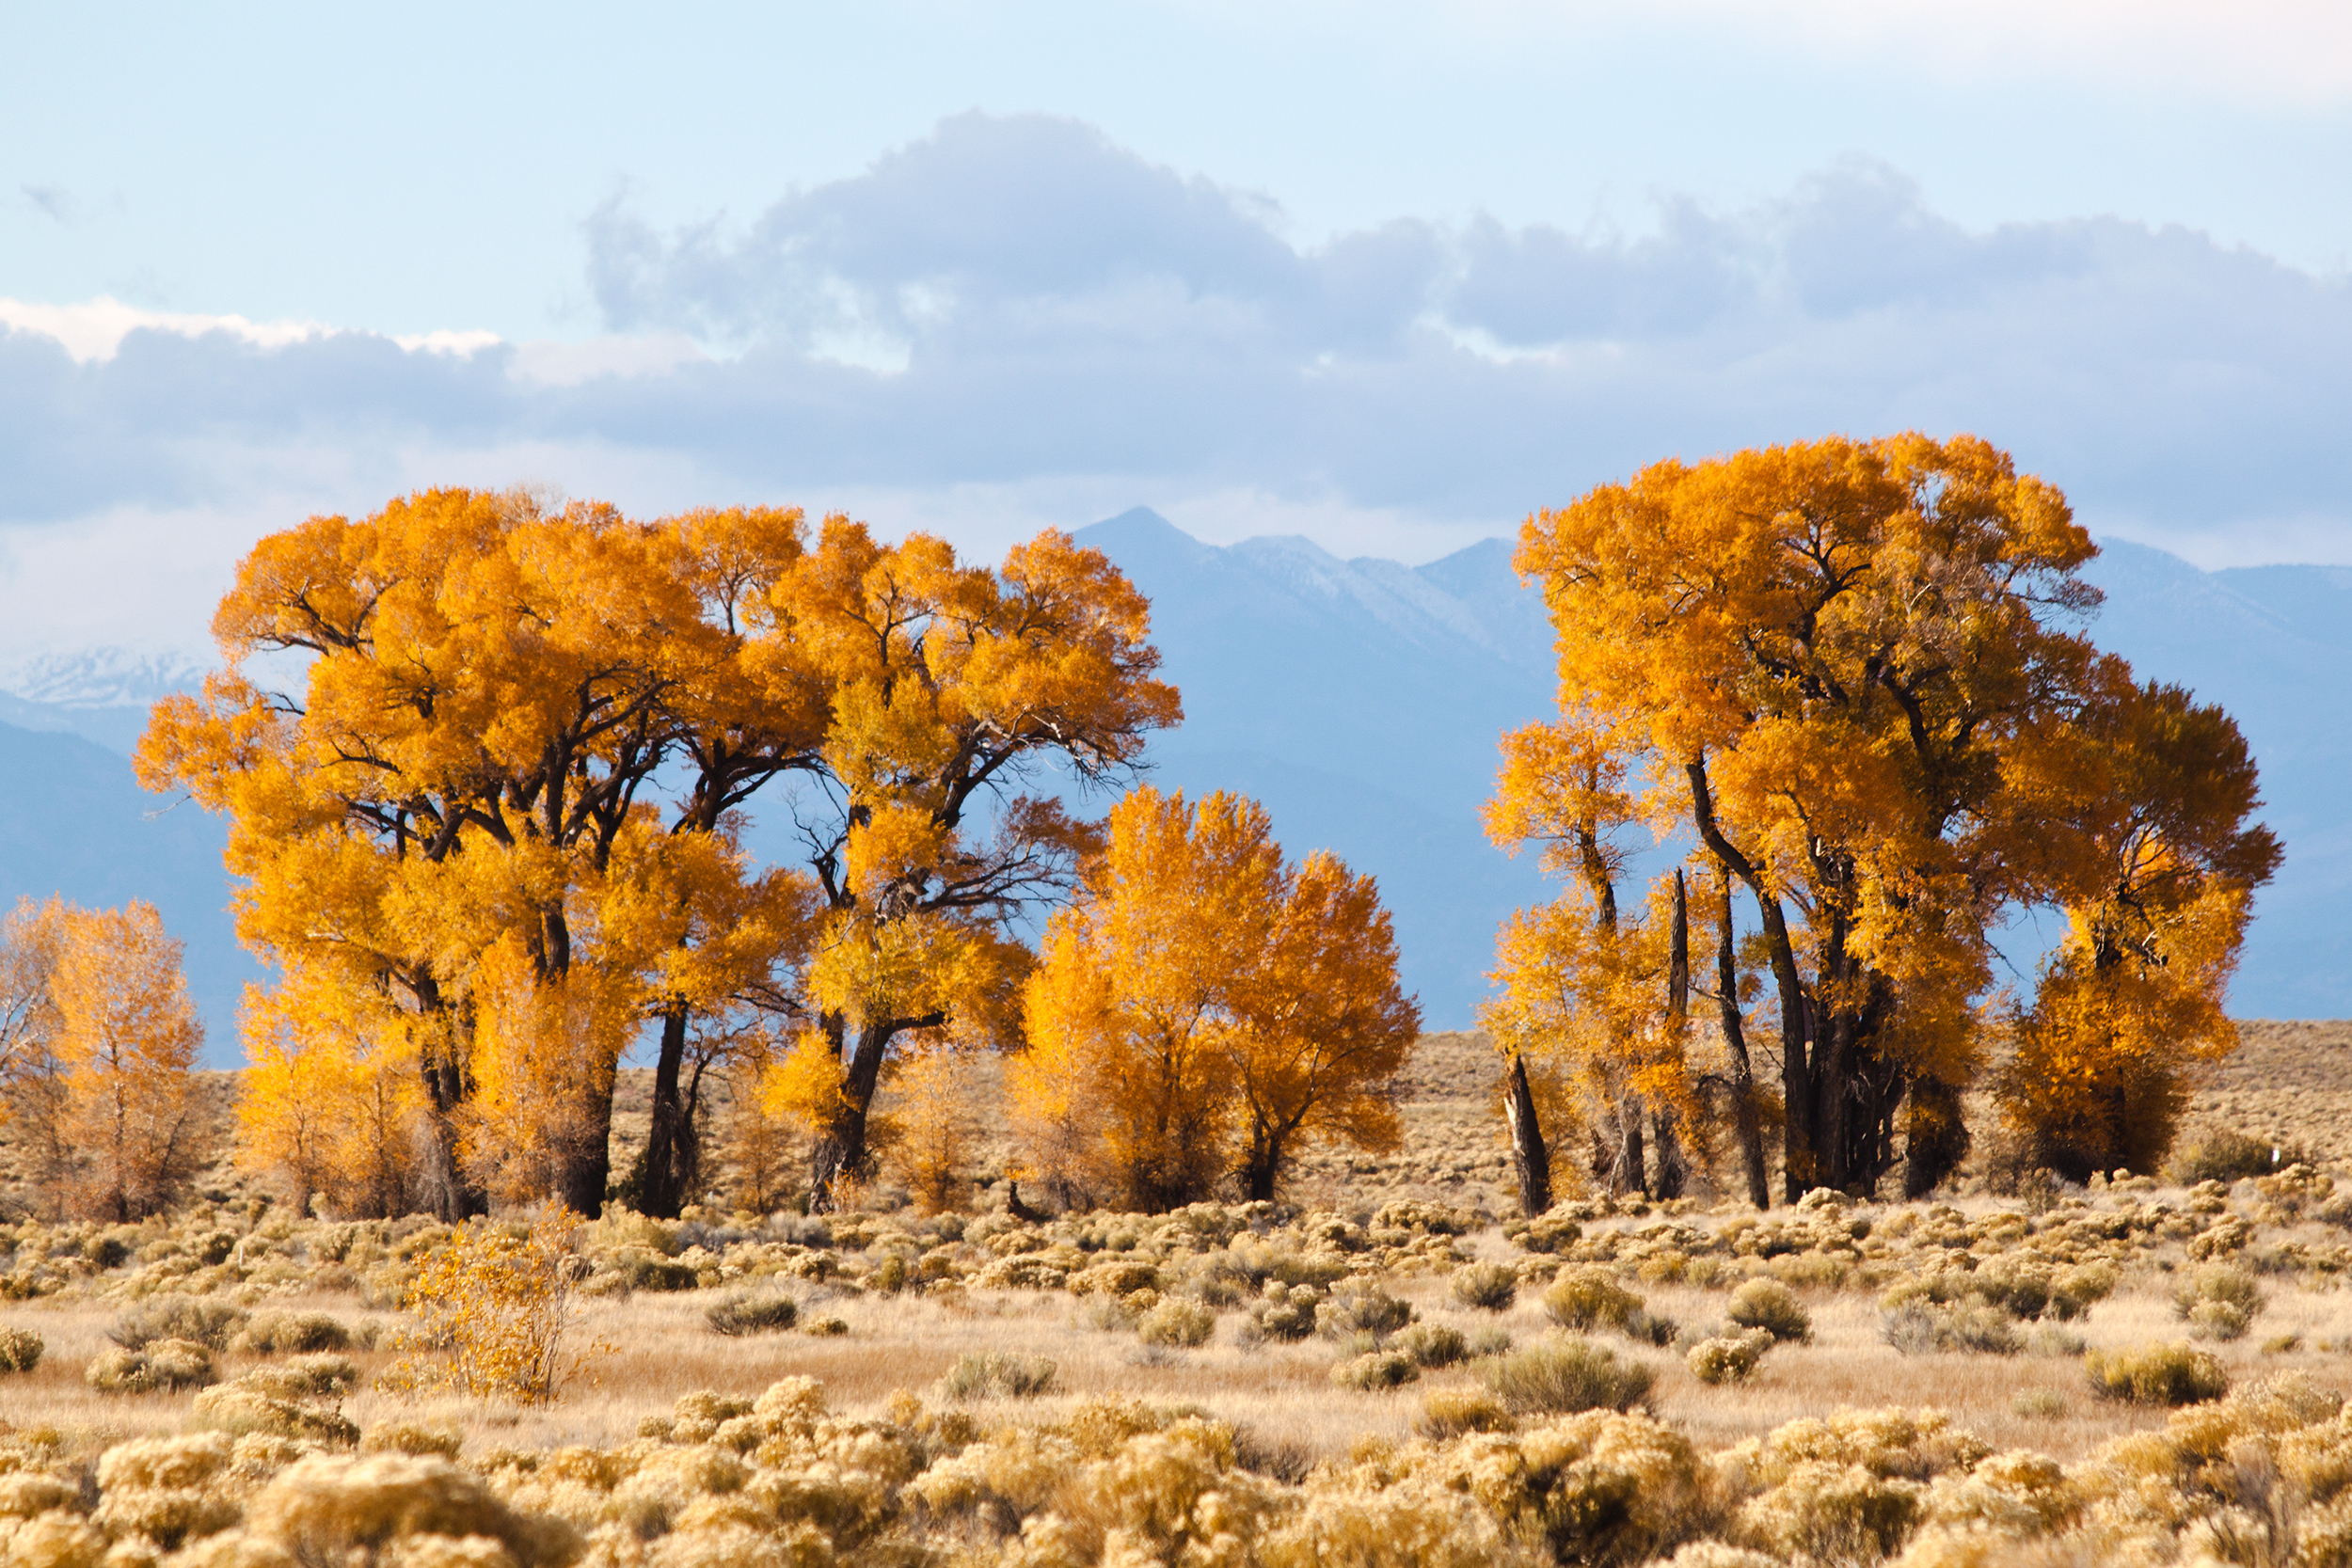 Stand tall like a grove of strong desert trees by adding strength training exercise to your lifestyle